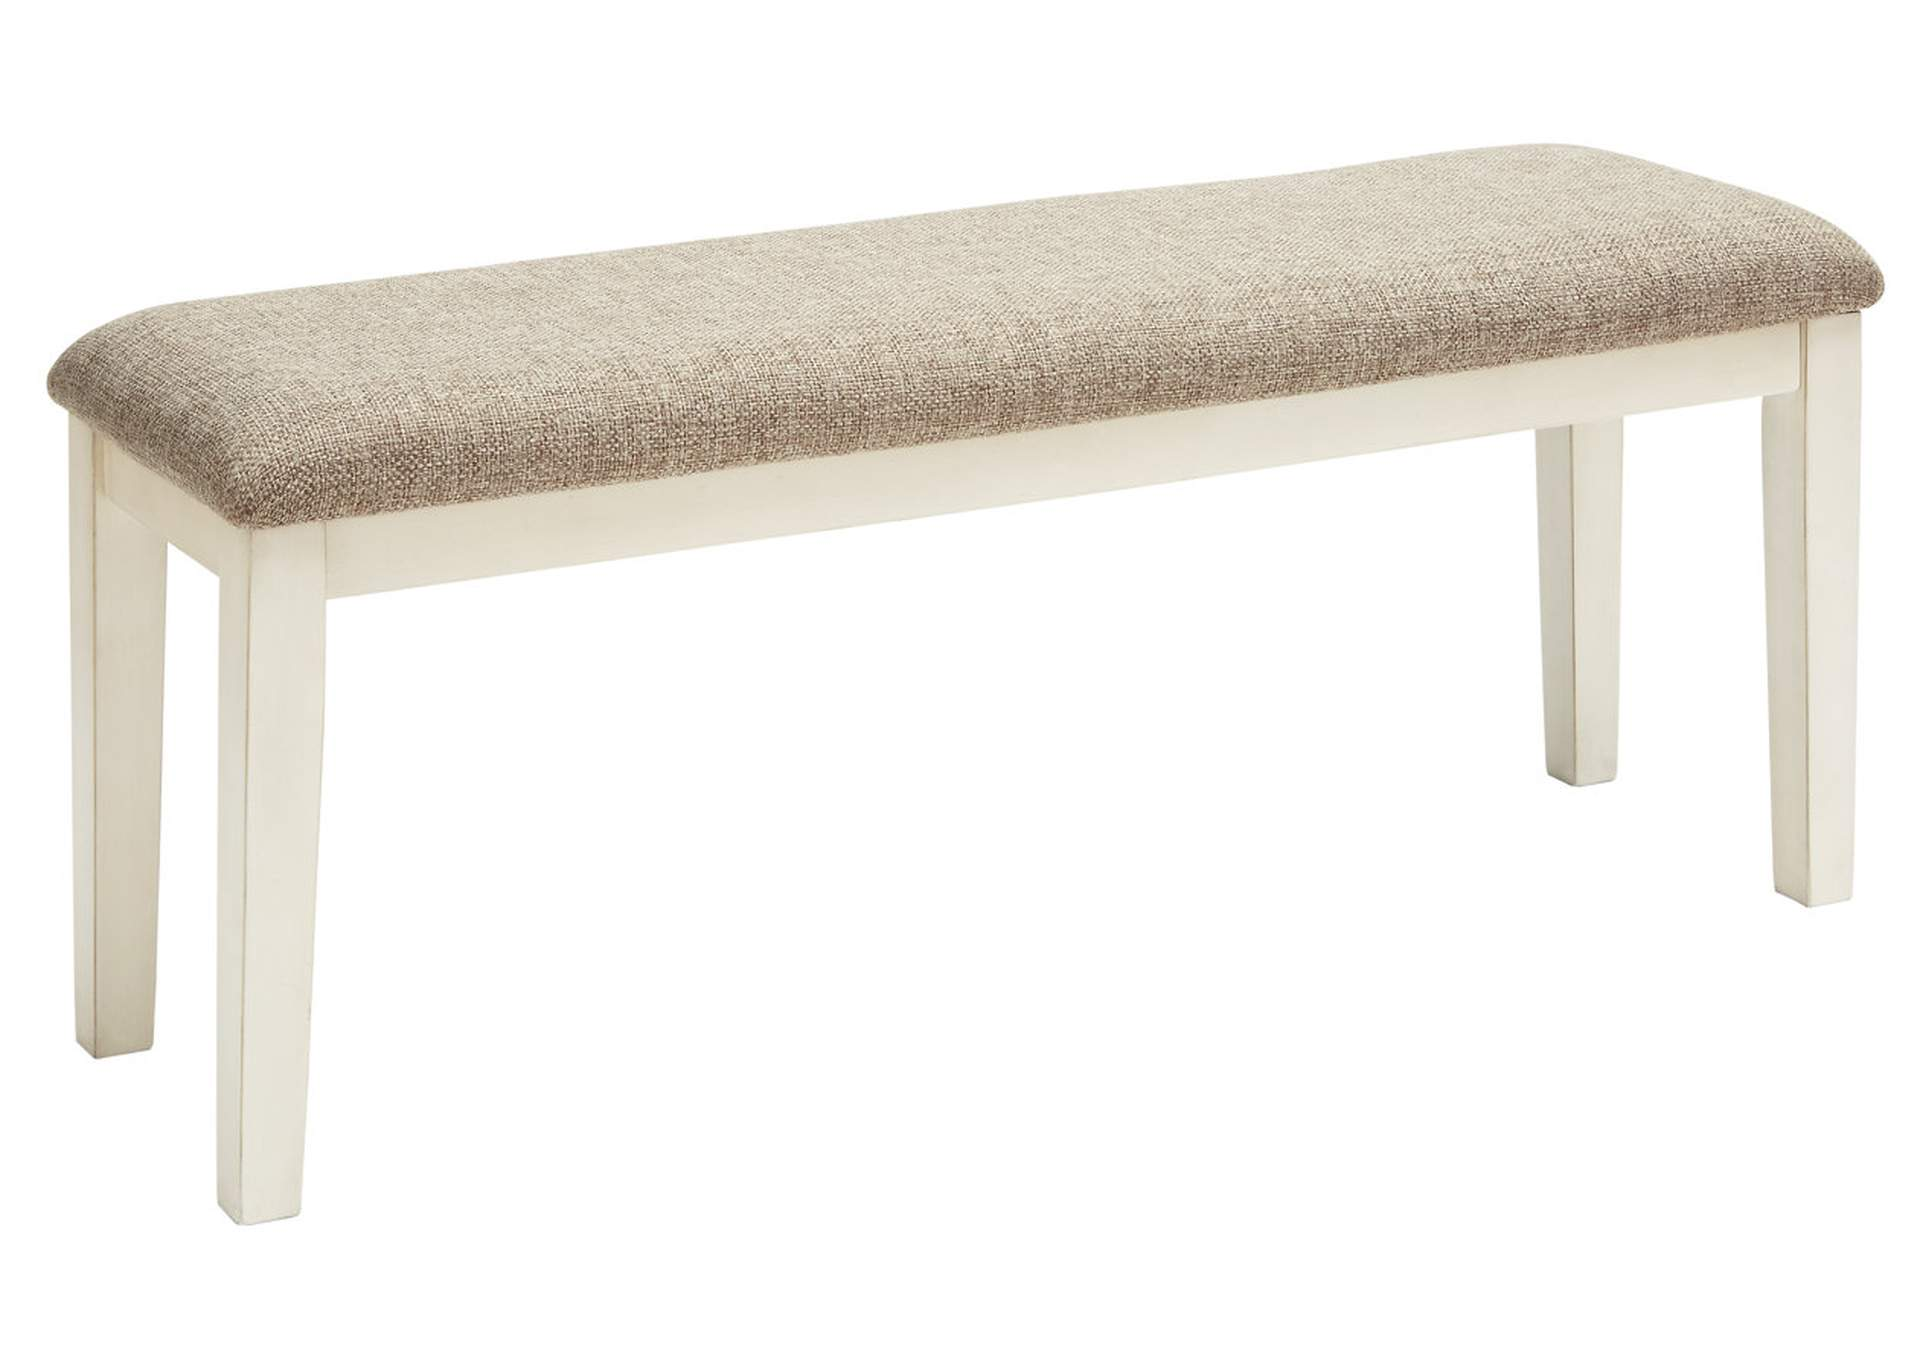 Bardilyn Dining Room Bench,Signature Design By Ashley